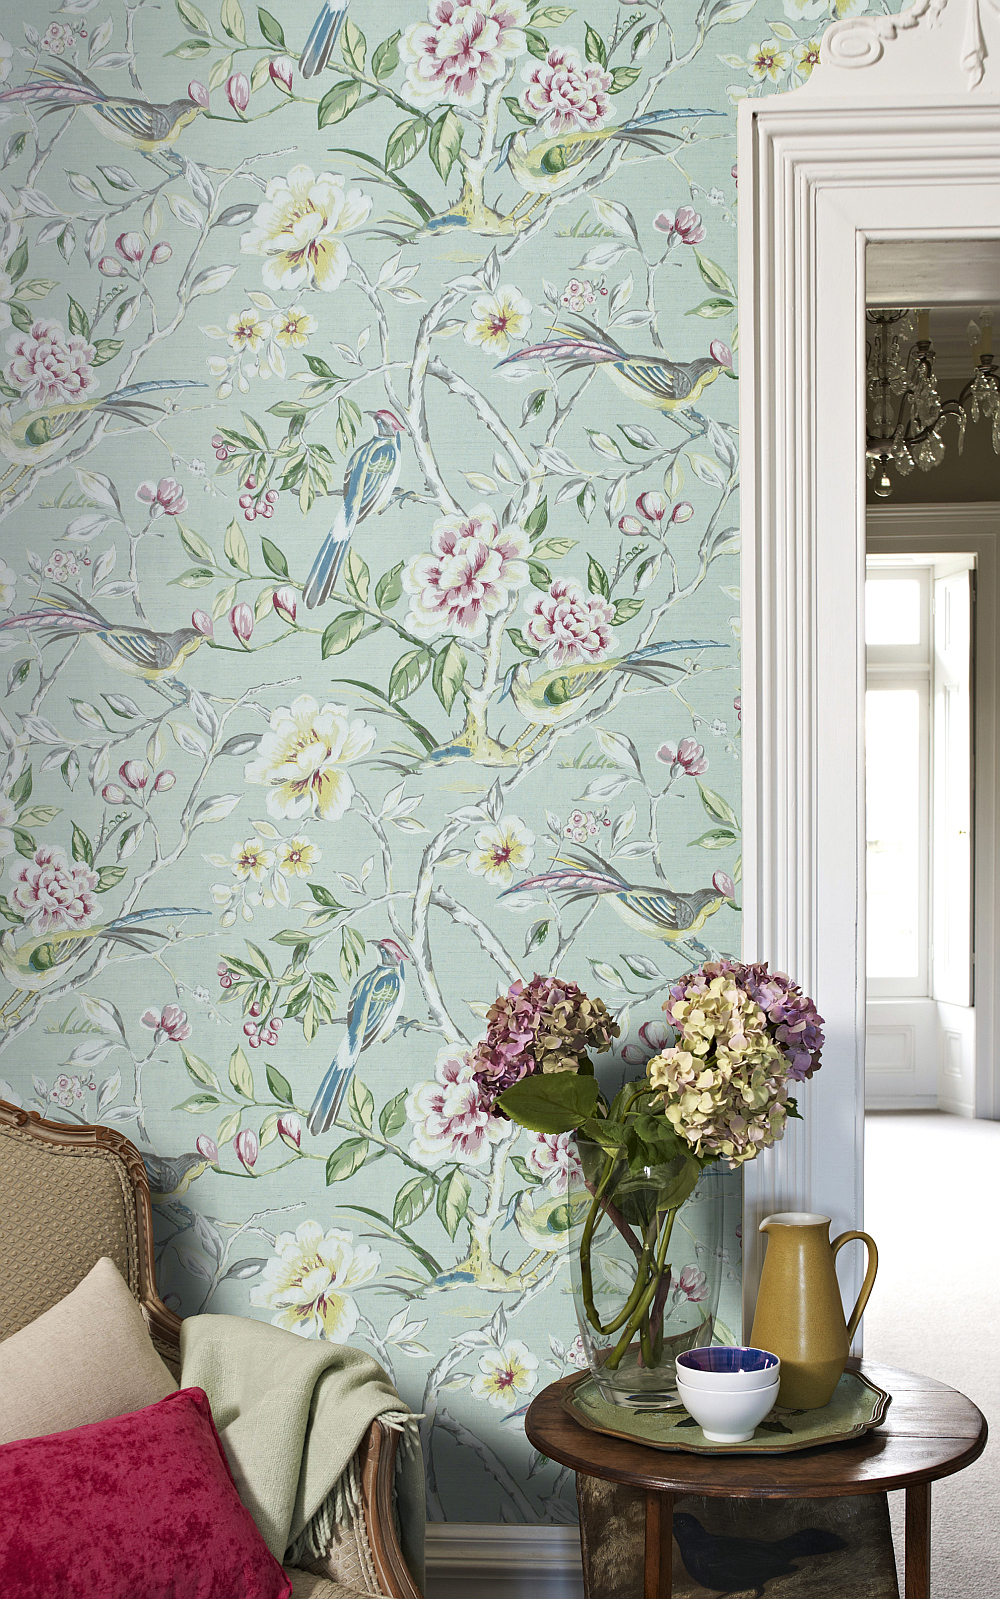 An-elegant-all-over-design-featuring-trailing-lotus-blossom-s-and-love-birds-wallpaper-wp423628